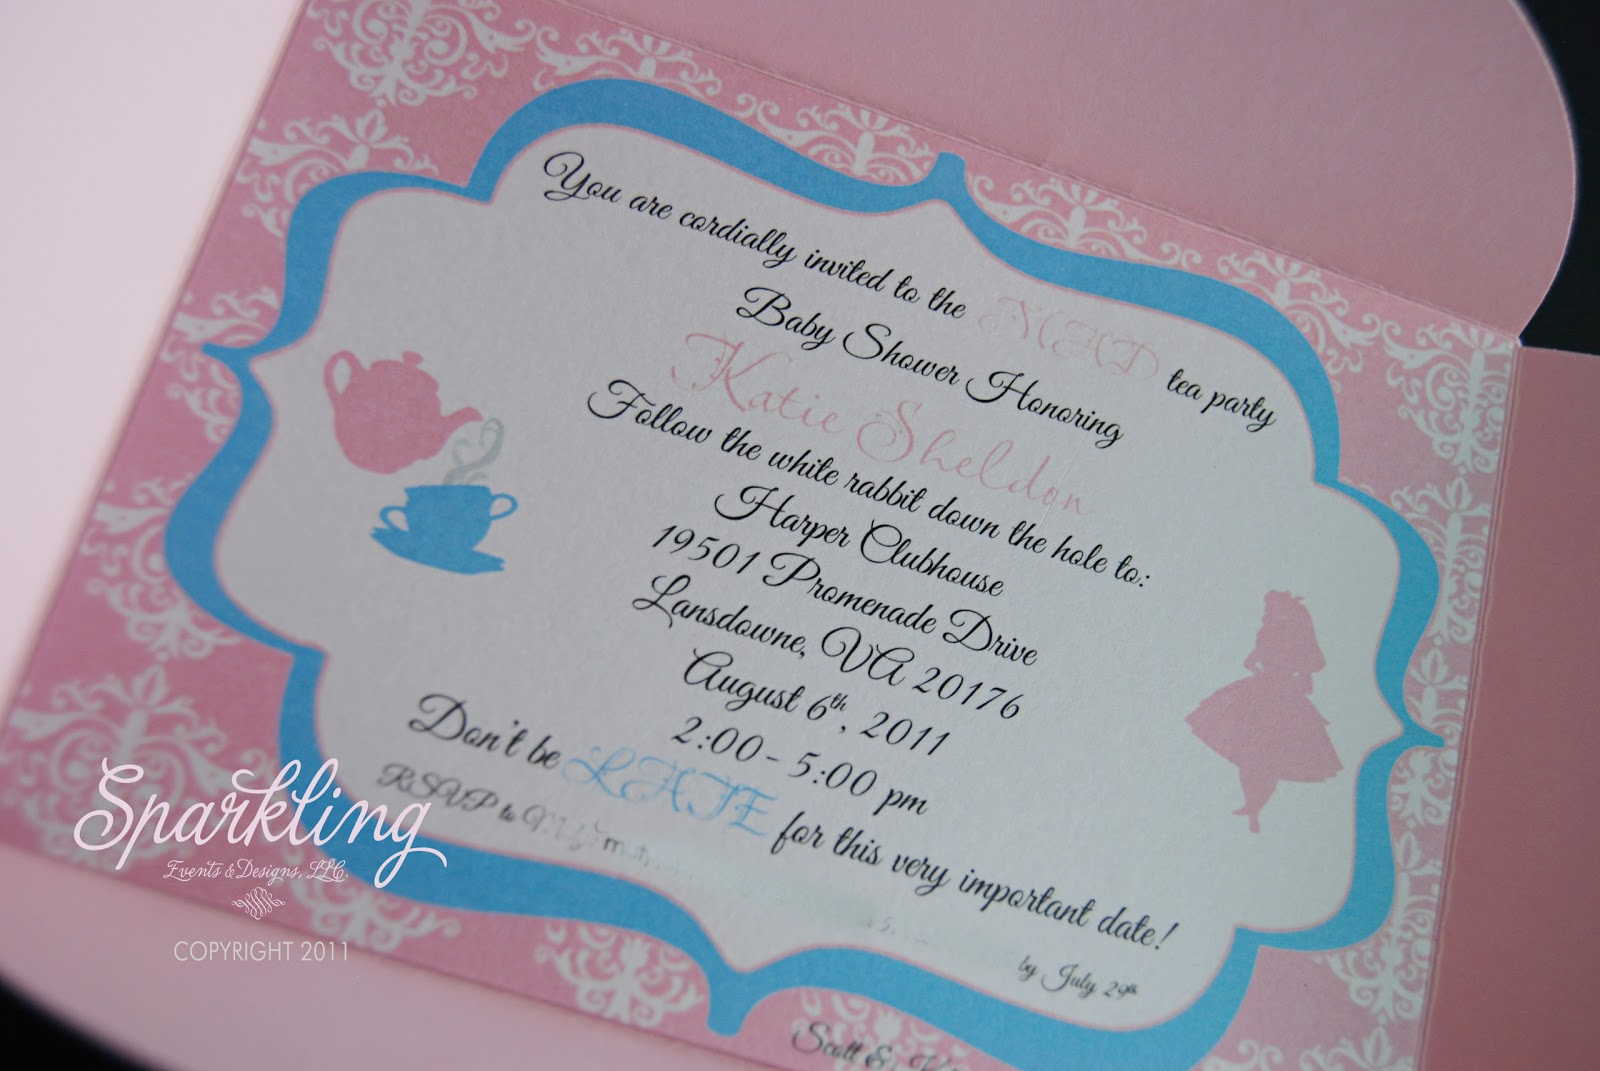 Sparkling Events & Designs: {Real Invitations} Alice in Wonderland ...